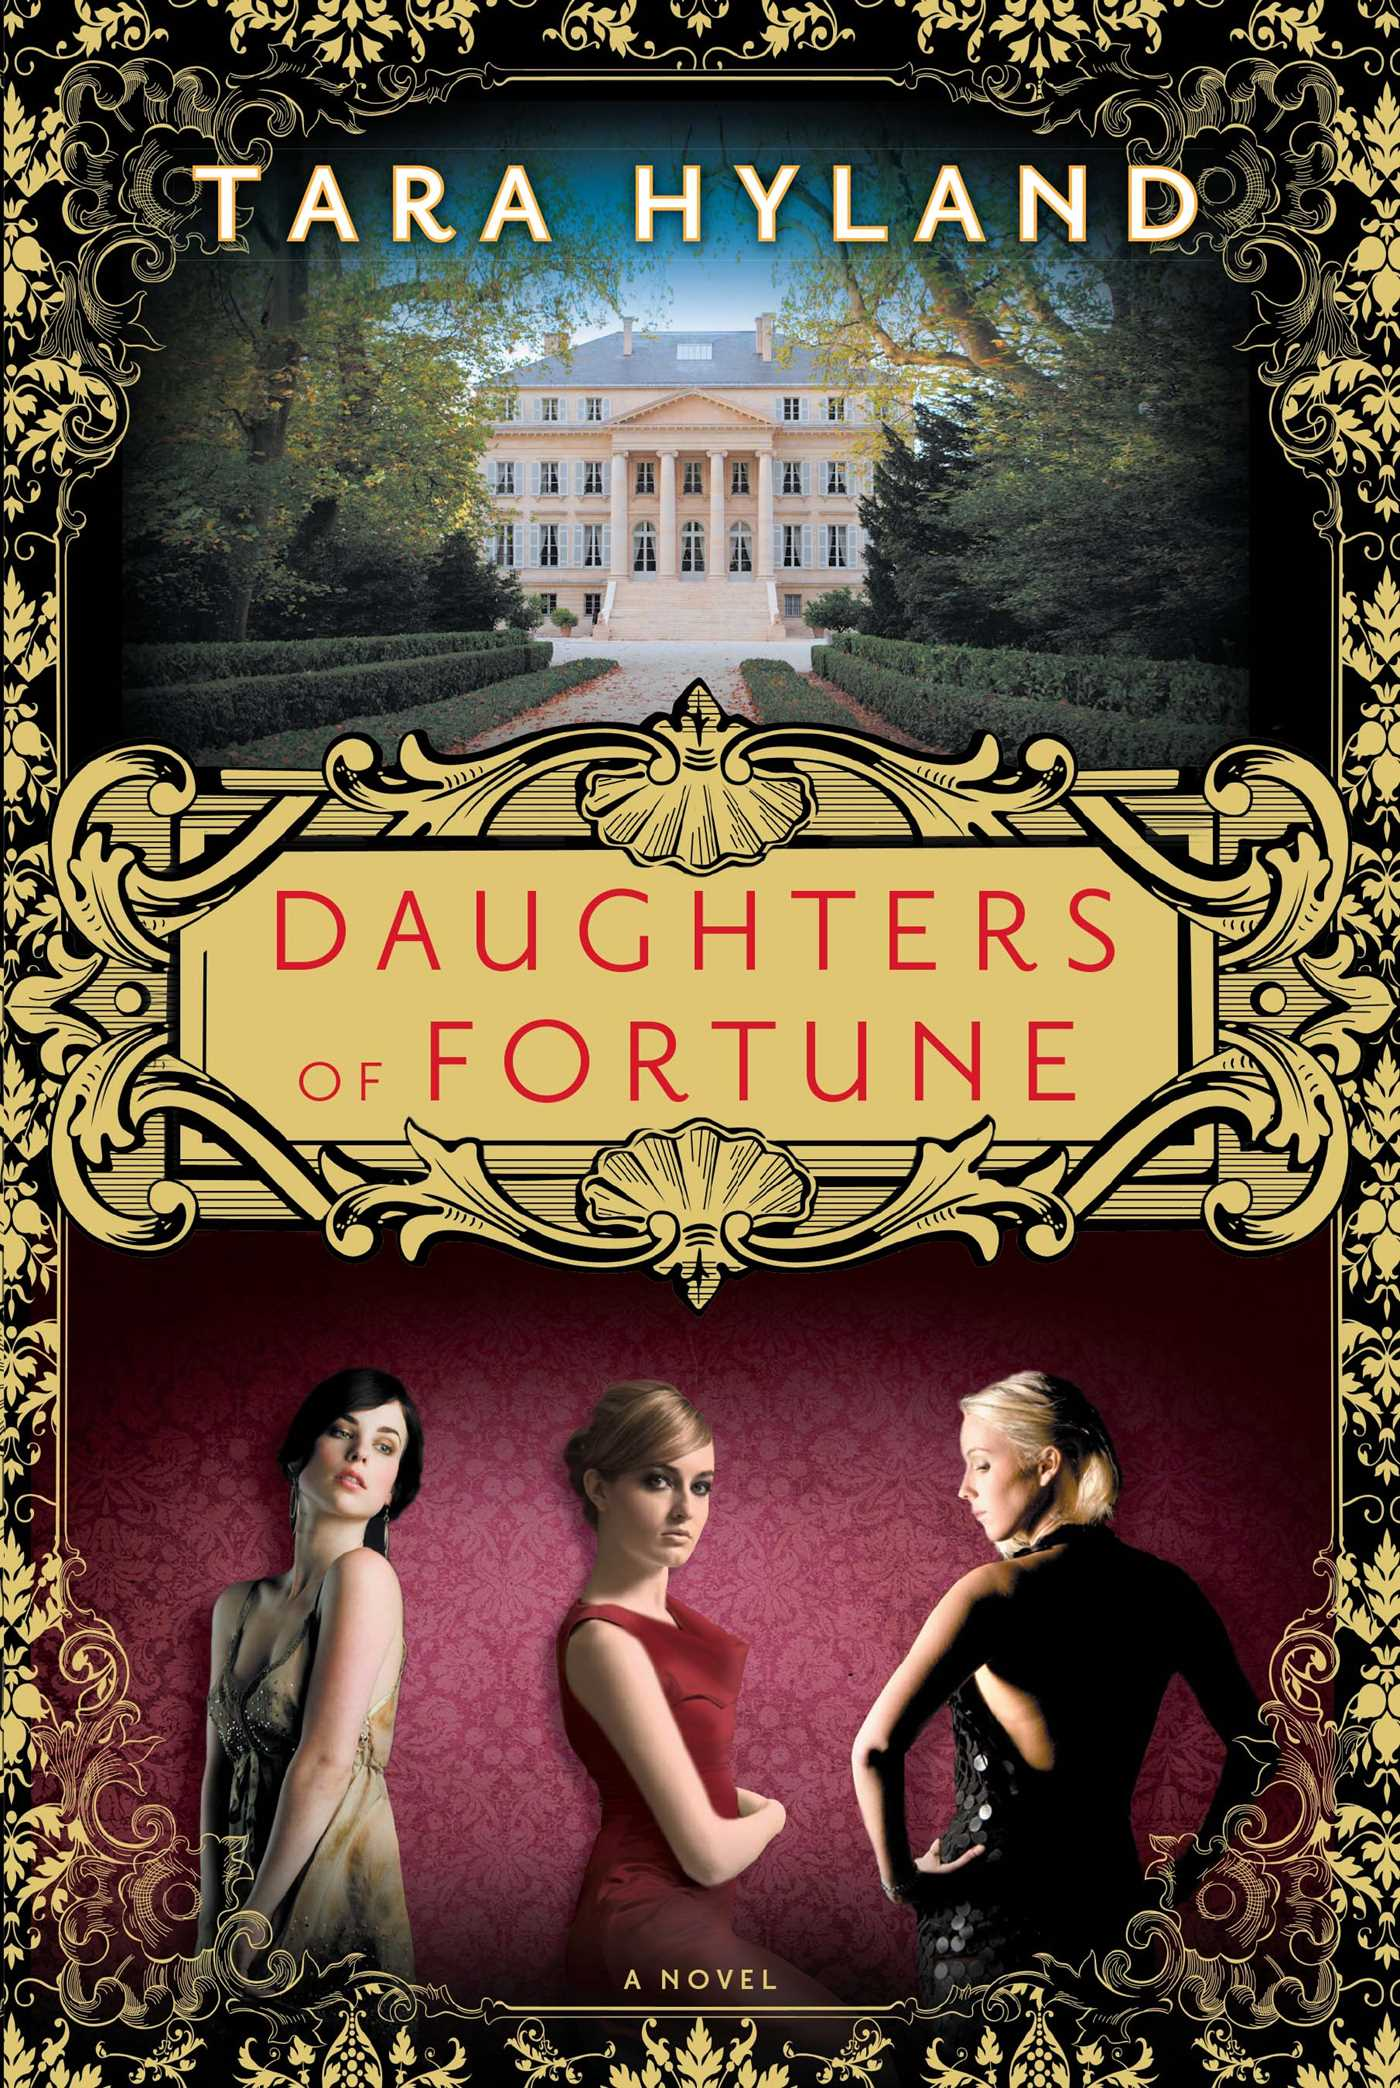 Daughters-of-fortune-9781439165065_hr